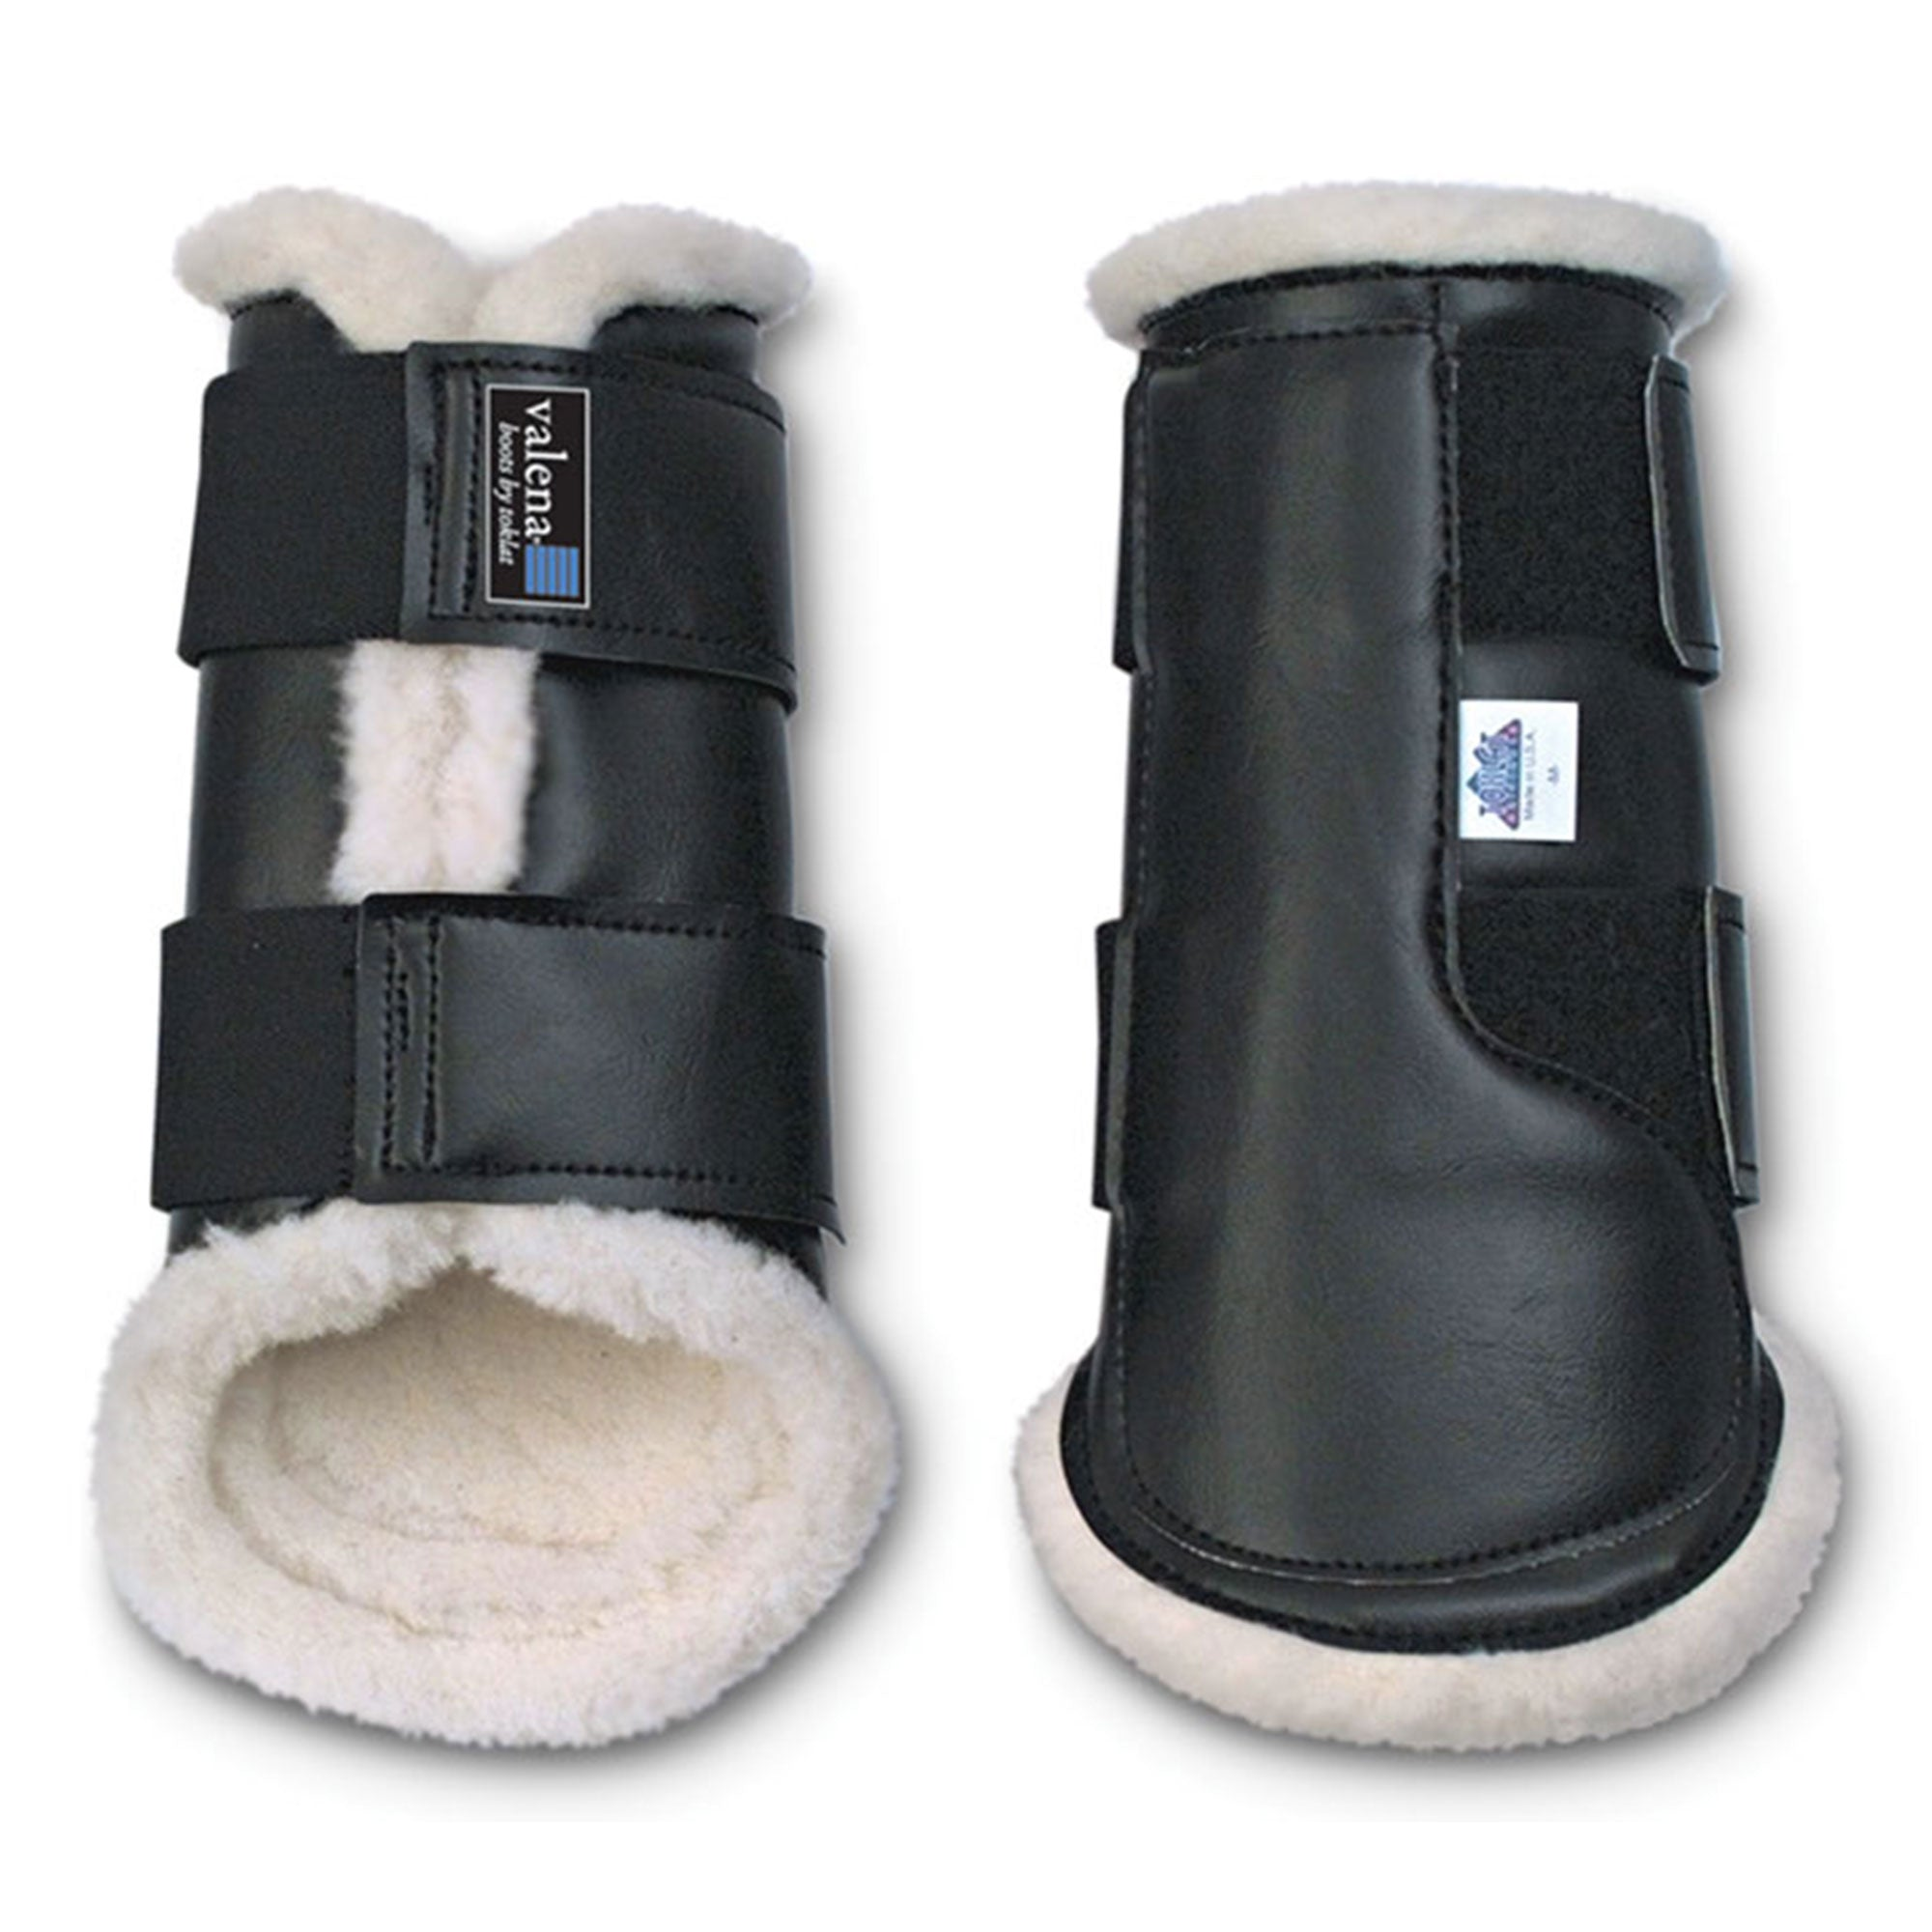 Valena Wool-Lined Protective Hind Boots